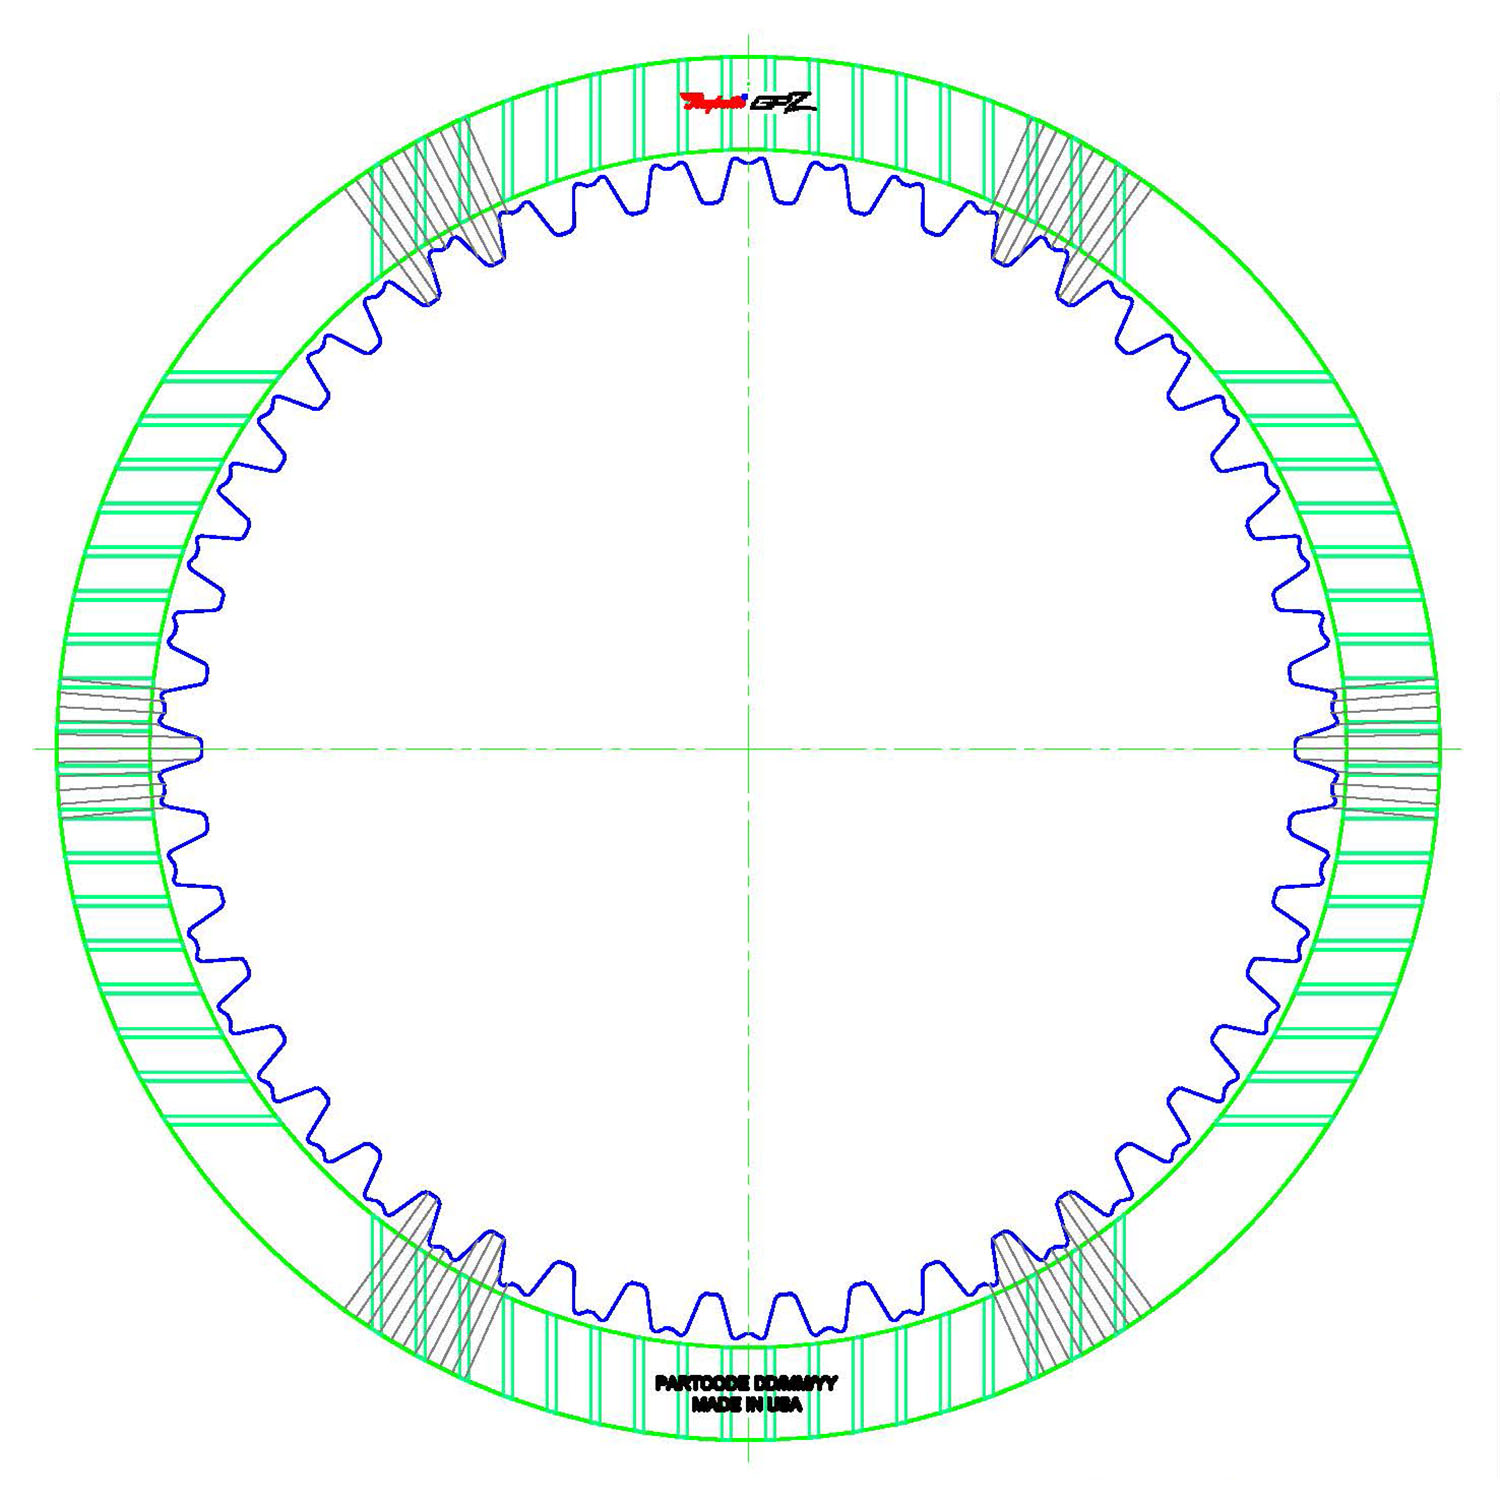 GPZ620 | 1996-ON Friction Clutch Plate GPZ B3 Clutch Double Sided, ID Spline GPZ